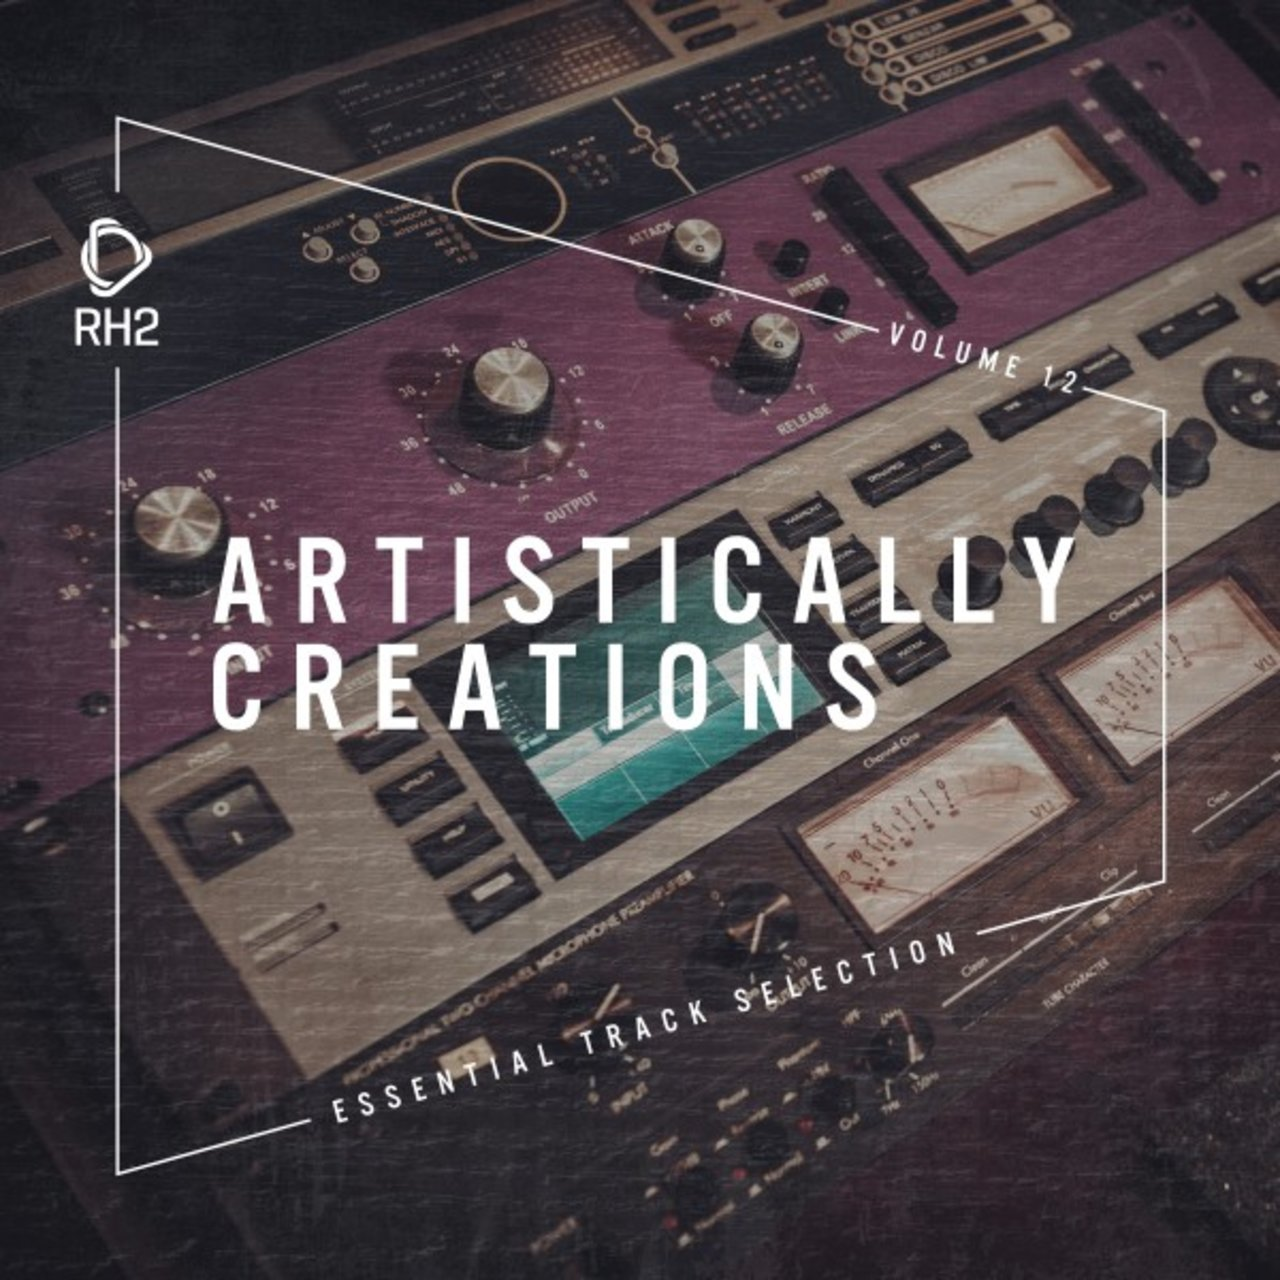 Artistically Creations, Vol. 12